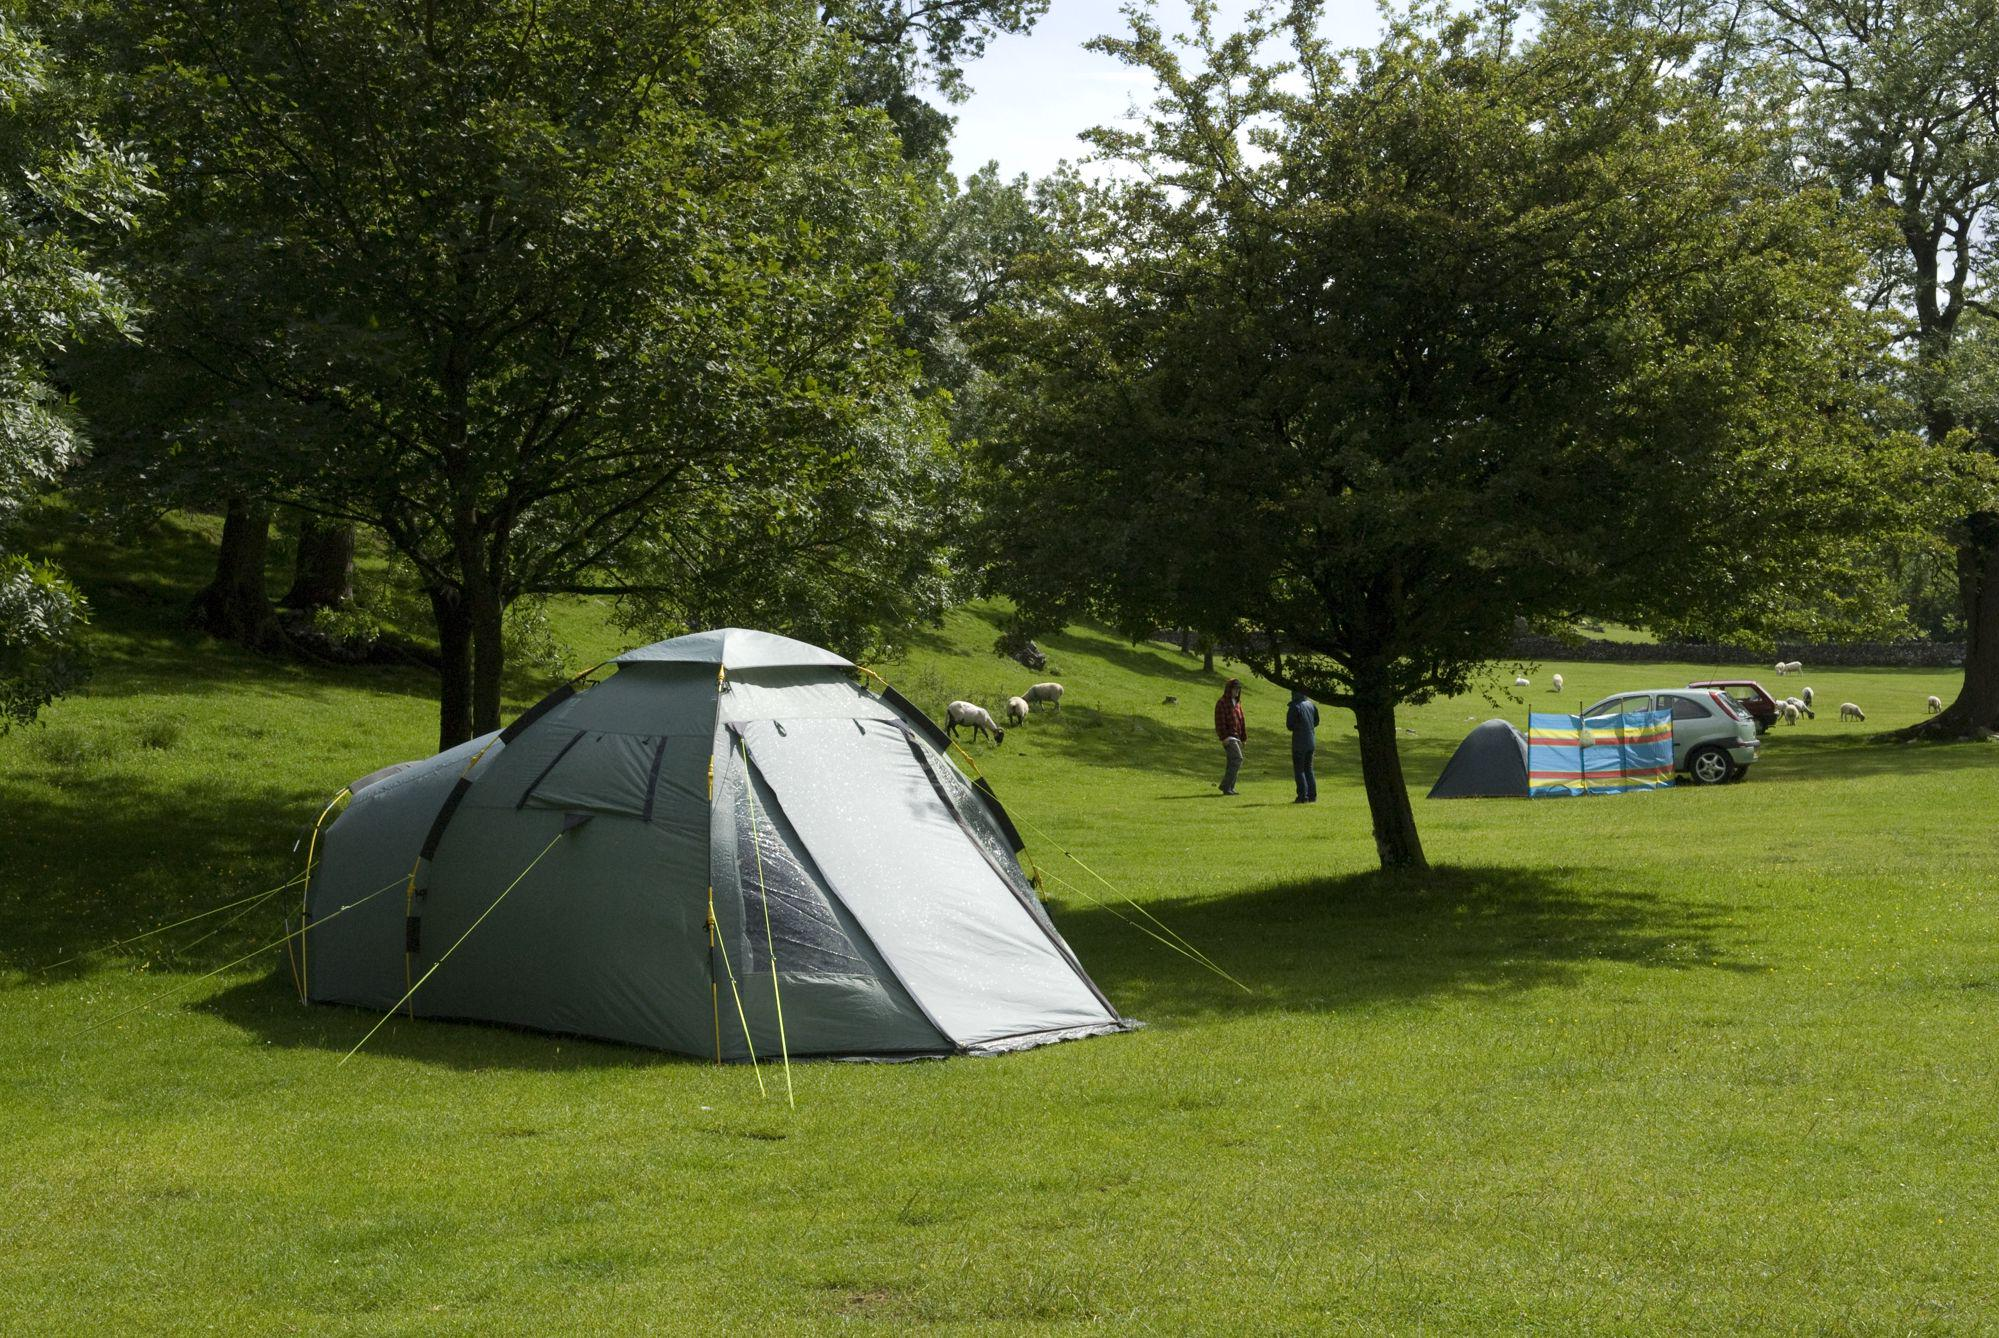 Grassington Camping | Campsites in Grassington, Yorkshire Dales